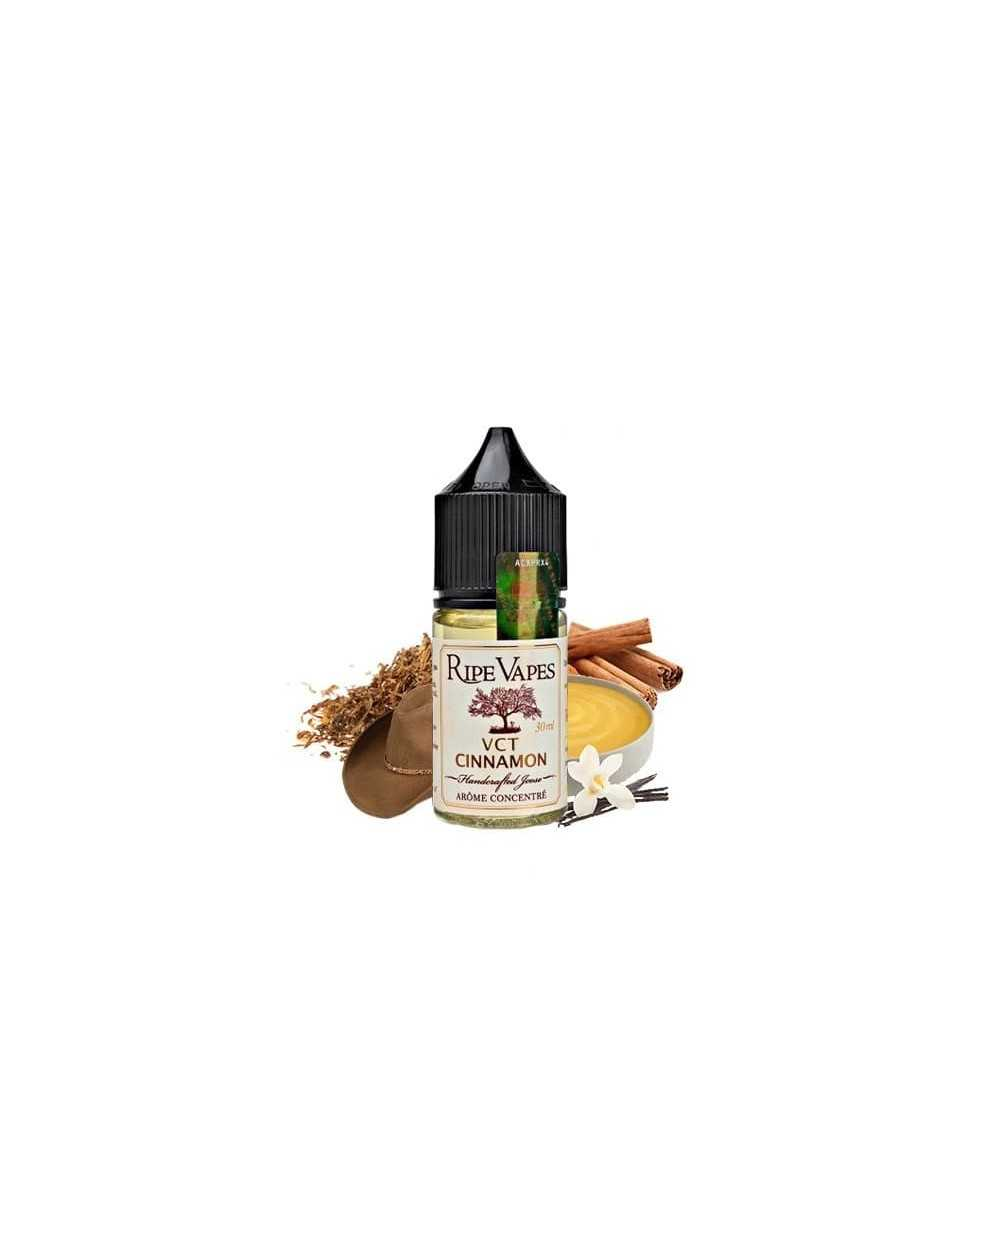 Concentrated aroma VCT Cinnamon 30ml - Ripe Vapes-1